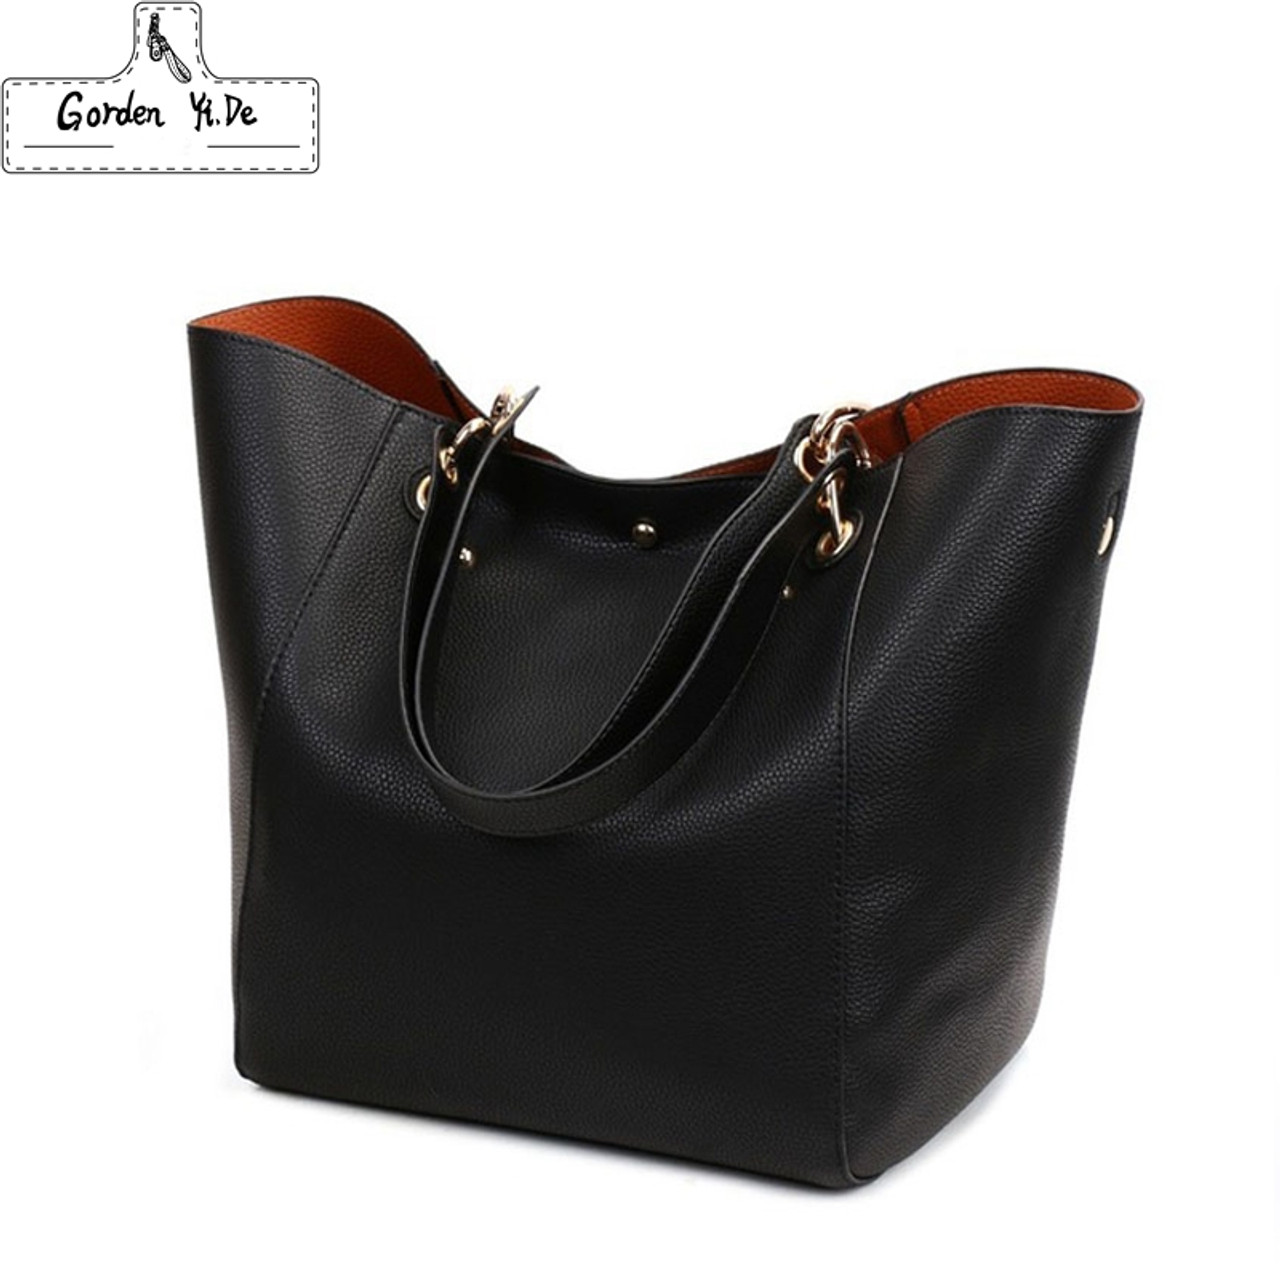 80891e2f726b Genuine leather Women handbags 2019 New Design Women Bucket Bags Vintage Large  Female Shoulder Bags bolsa ...